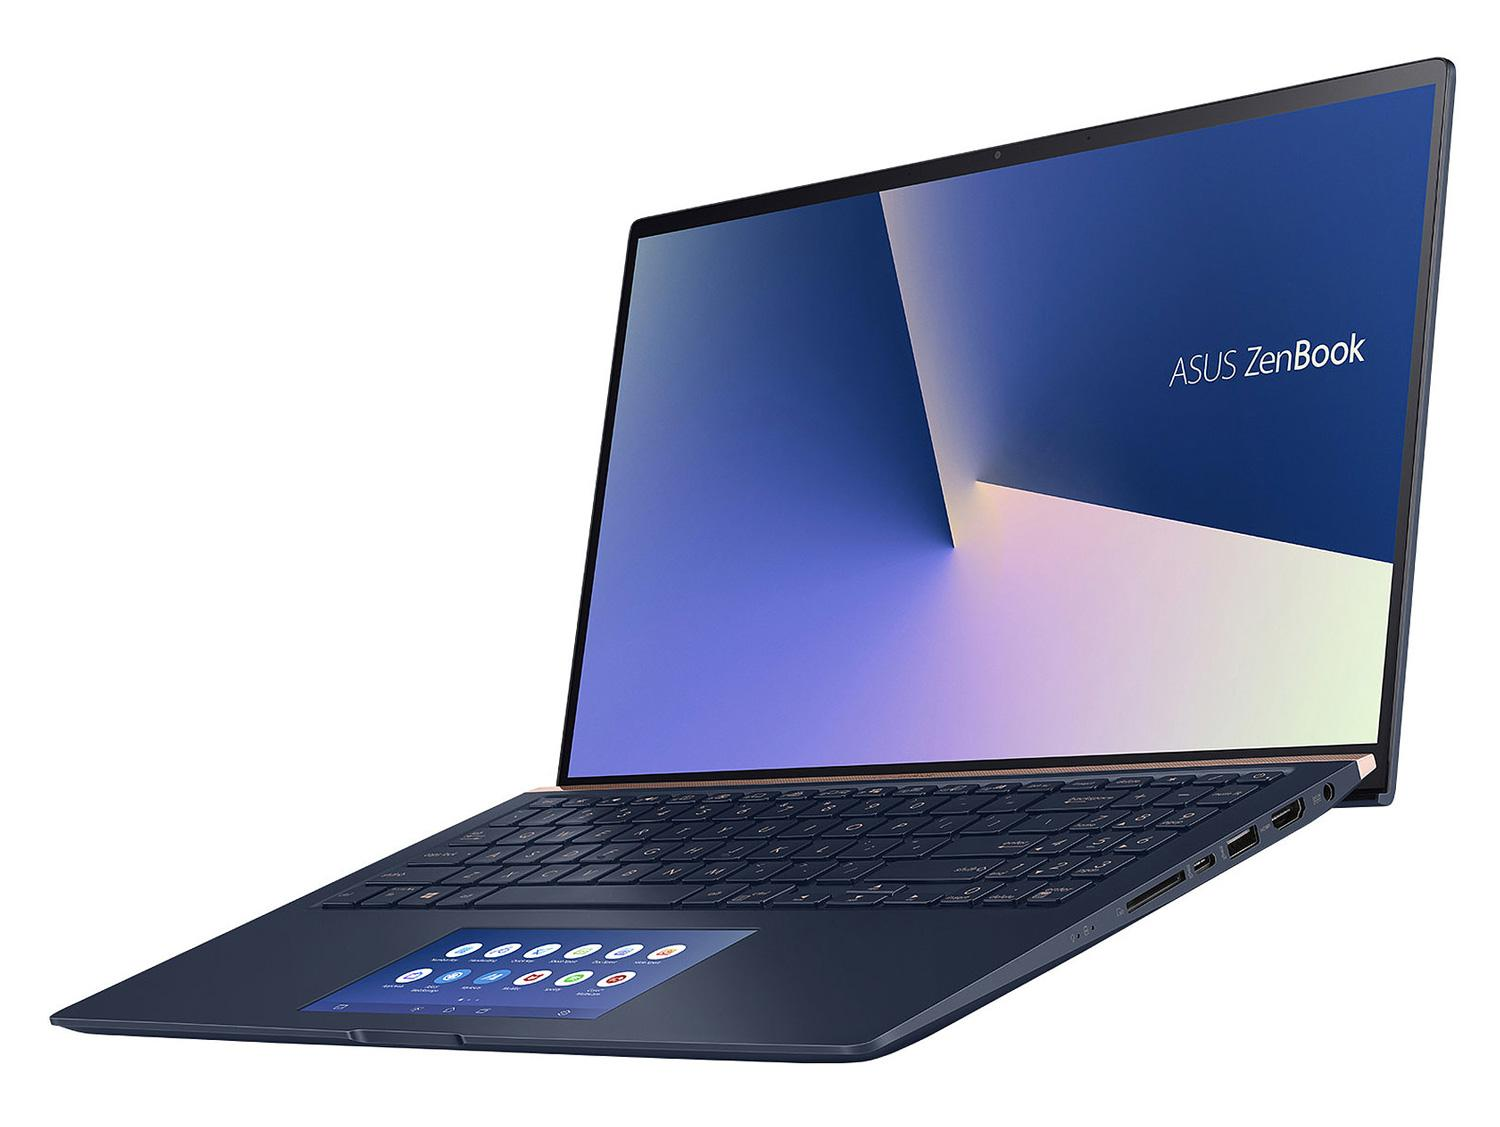 Ordinateur portable Asus ZenBook UX534FT-A9011T Bleu - GTX 1650 Max-Q, SSD 1 To, ScreenPad - photo 5